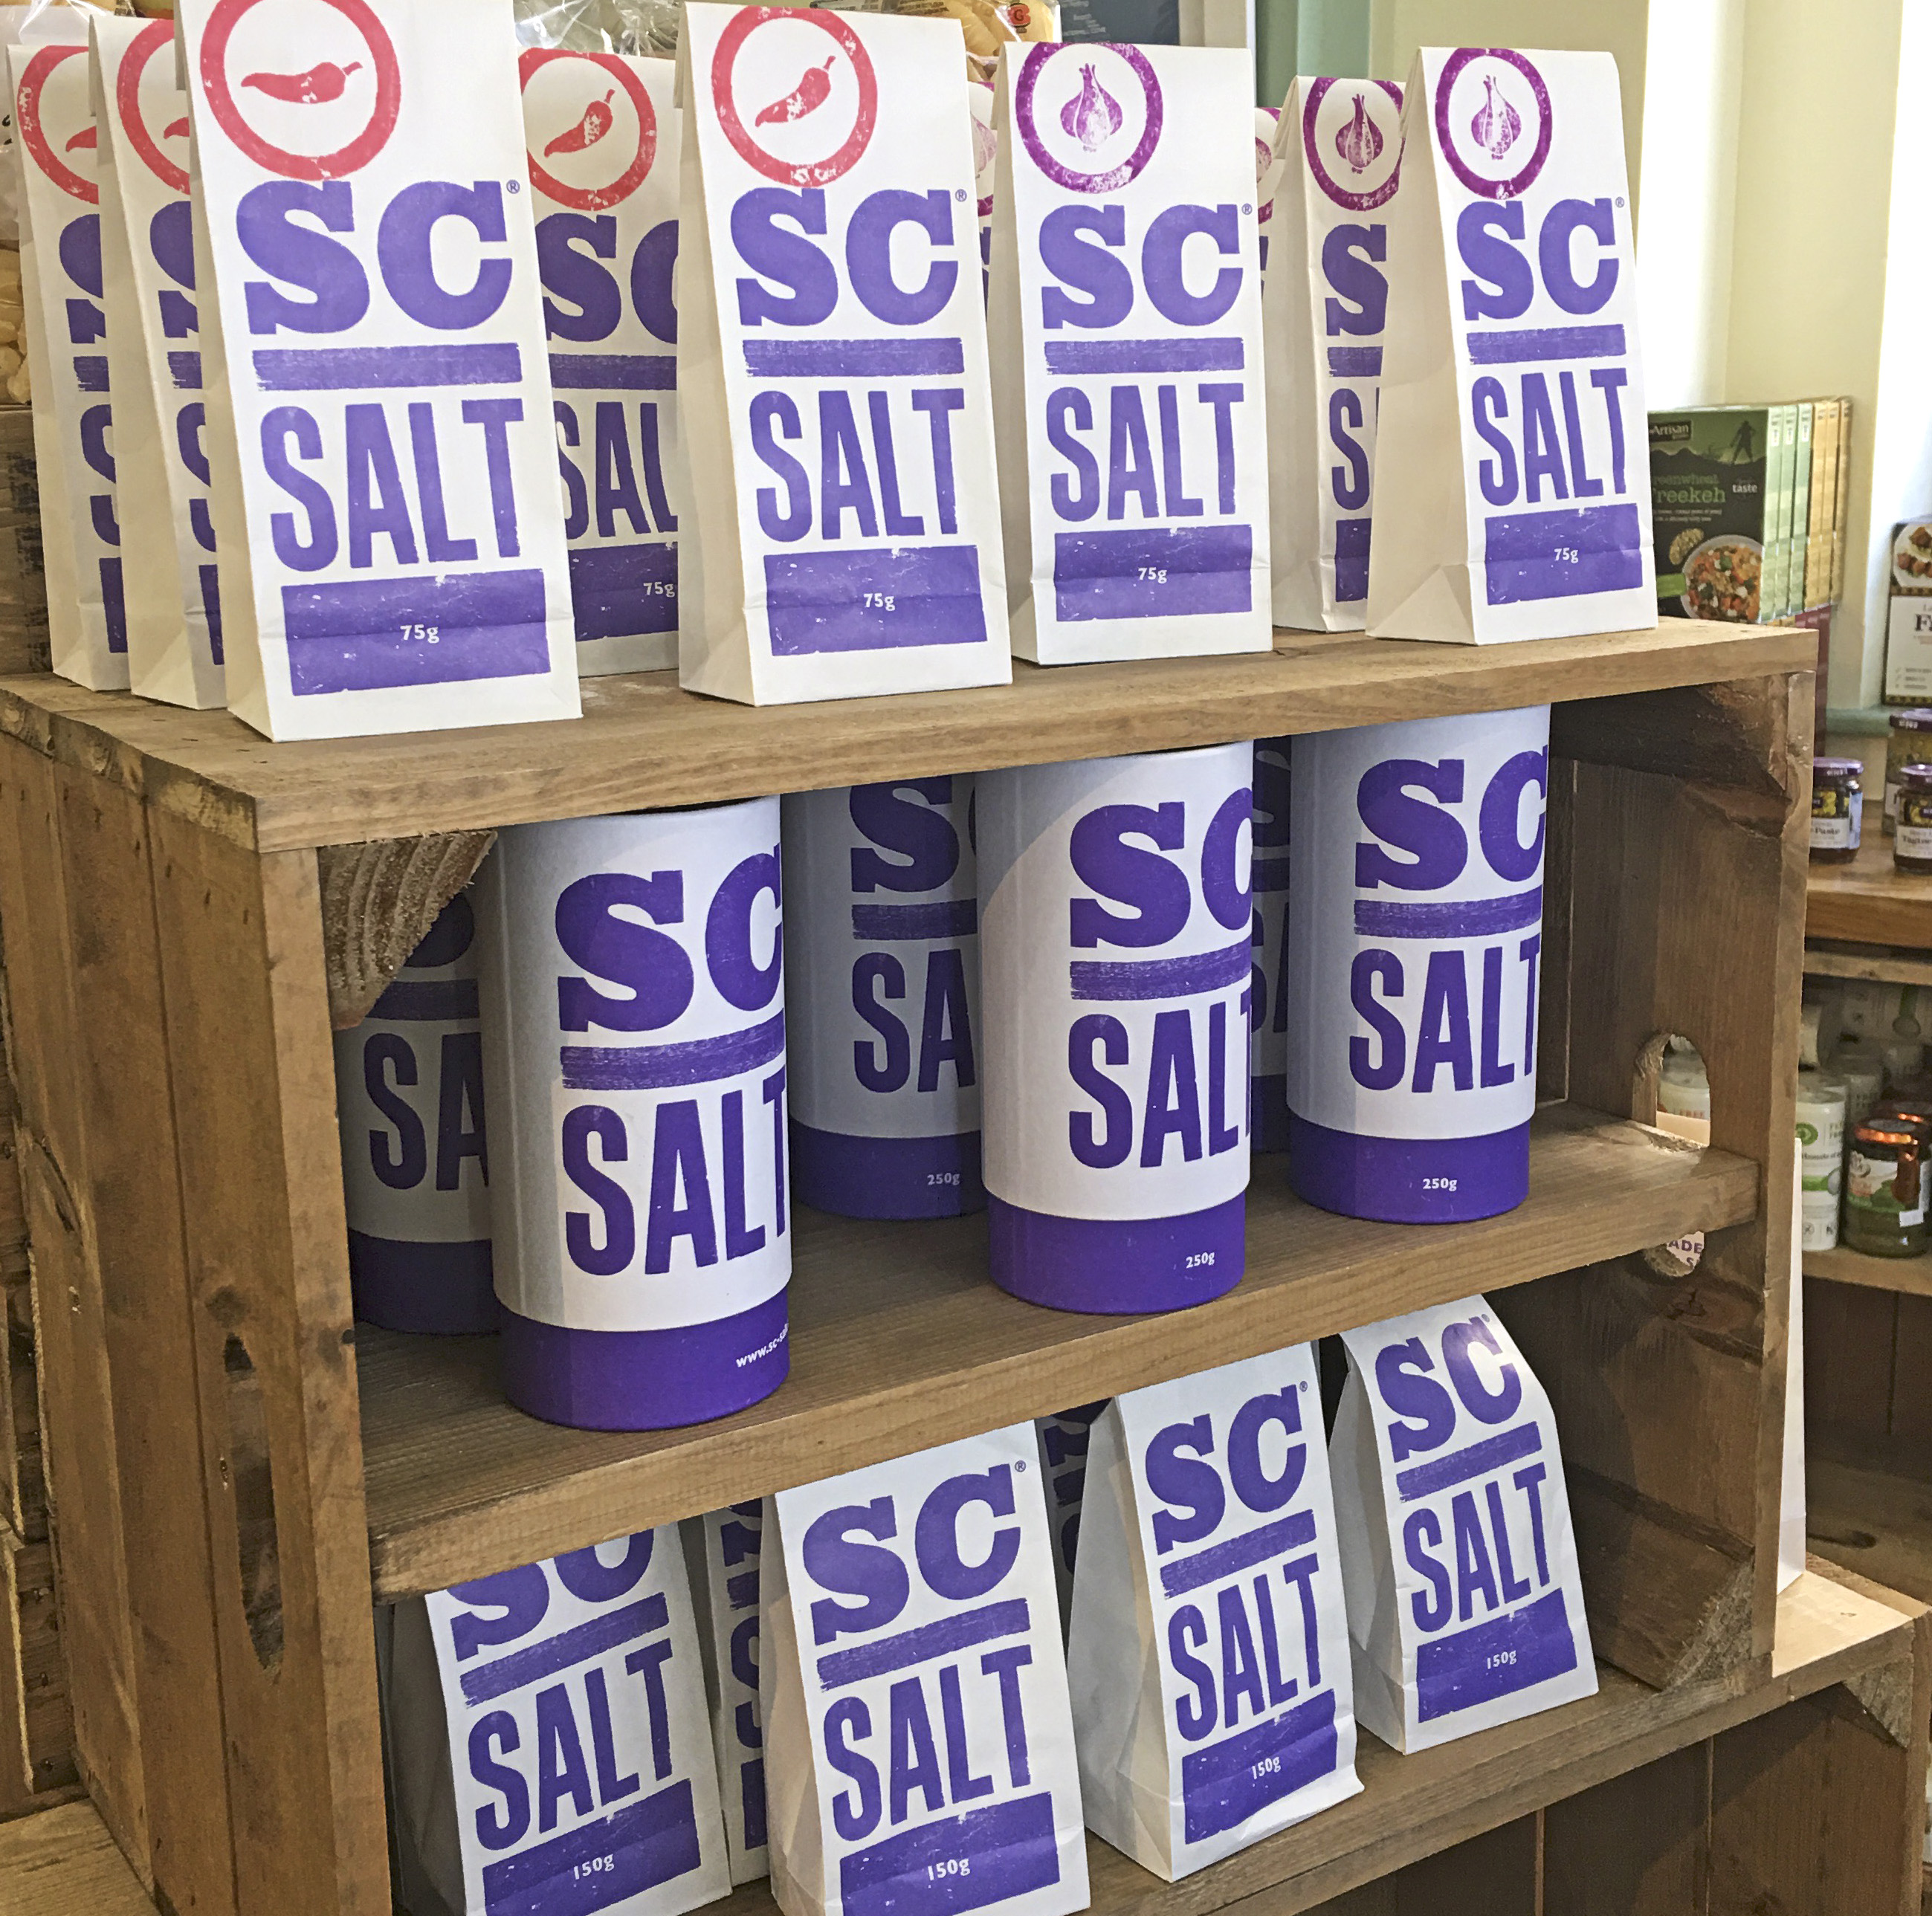 Isles of Scilly, SC Salt at the farm Deli, St Mary's